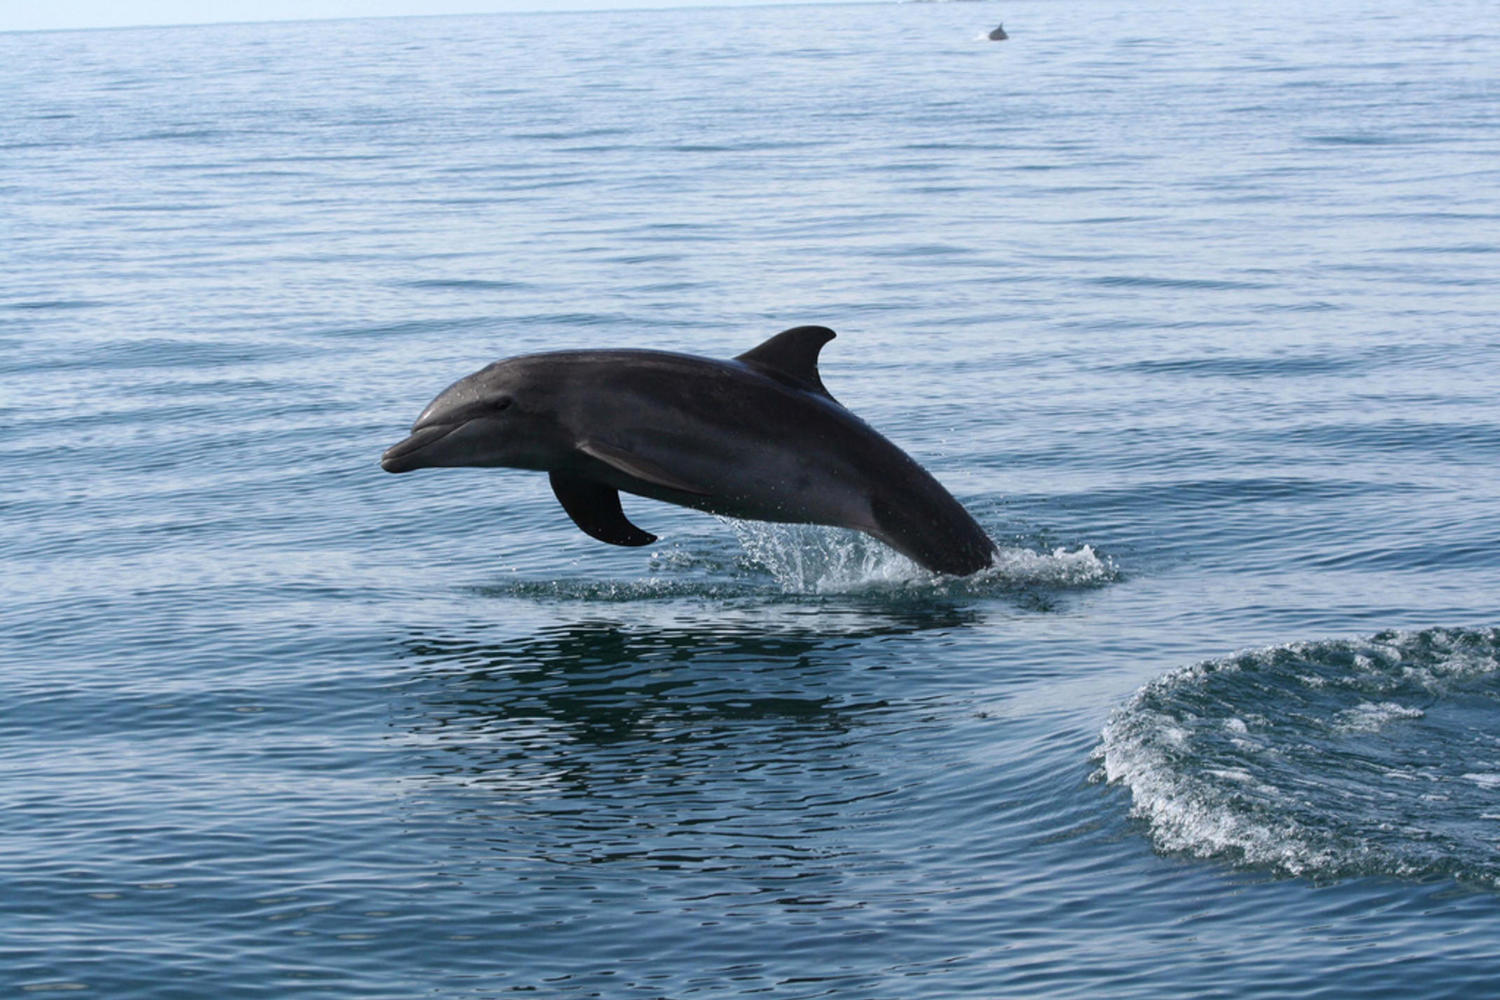 Dolphin leaping in the Pacific waters of Costa Rica